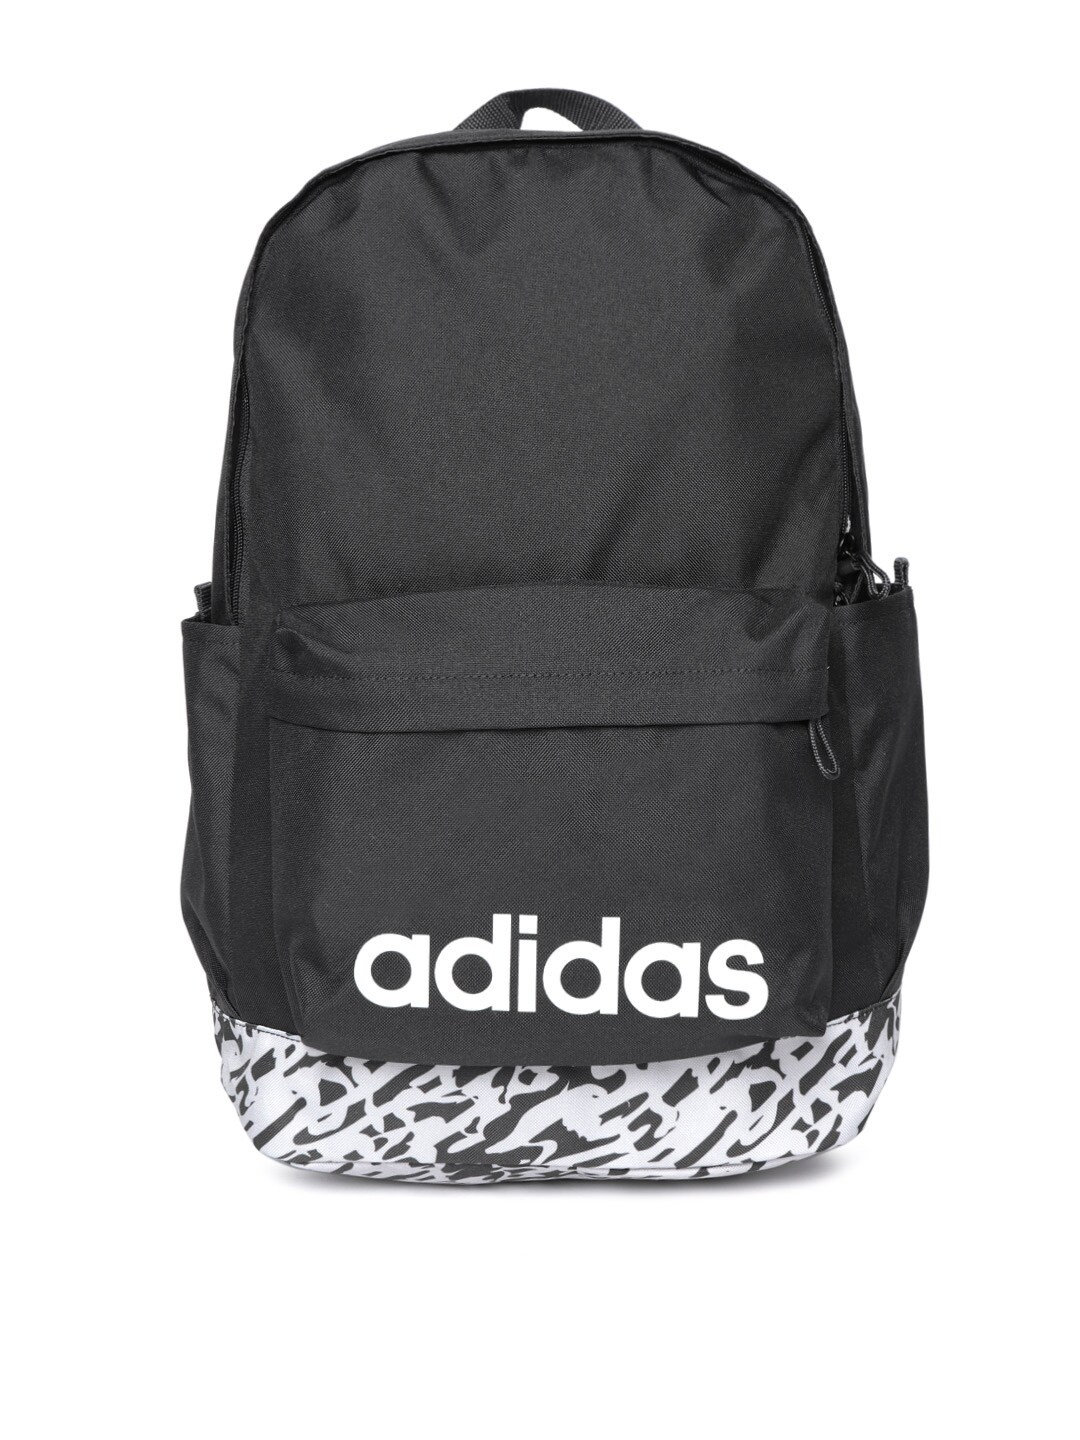 adidas Backpacks - Buy adidas Backpacks Online in India  8439bf44b4f0b